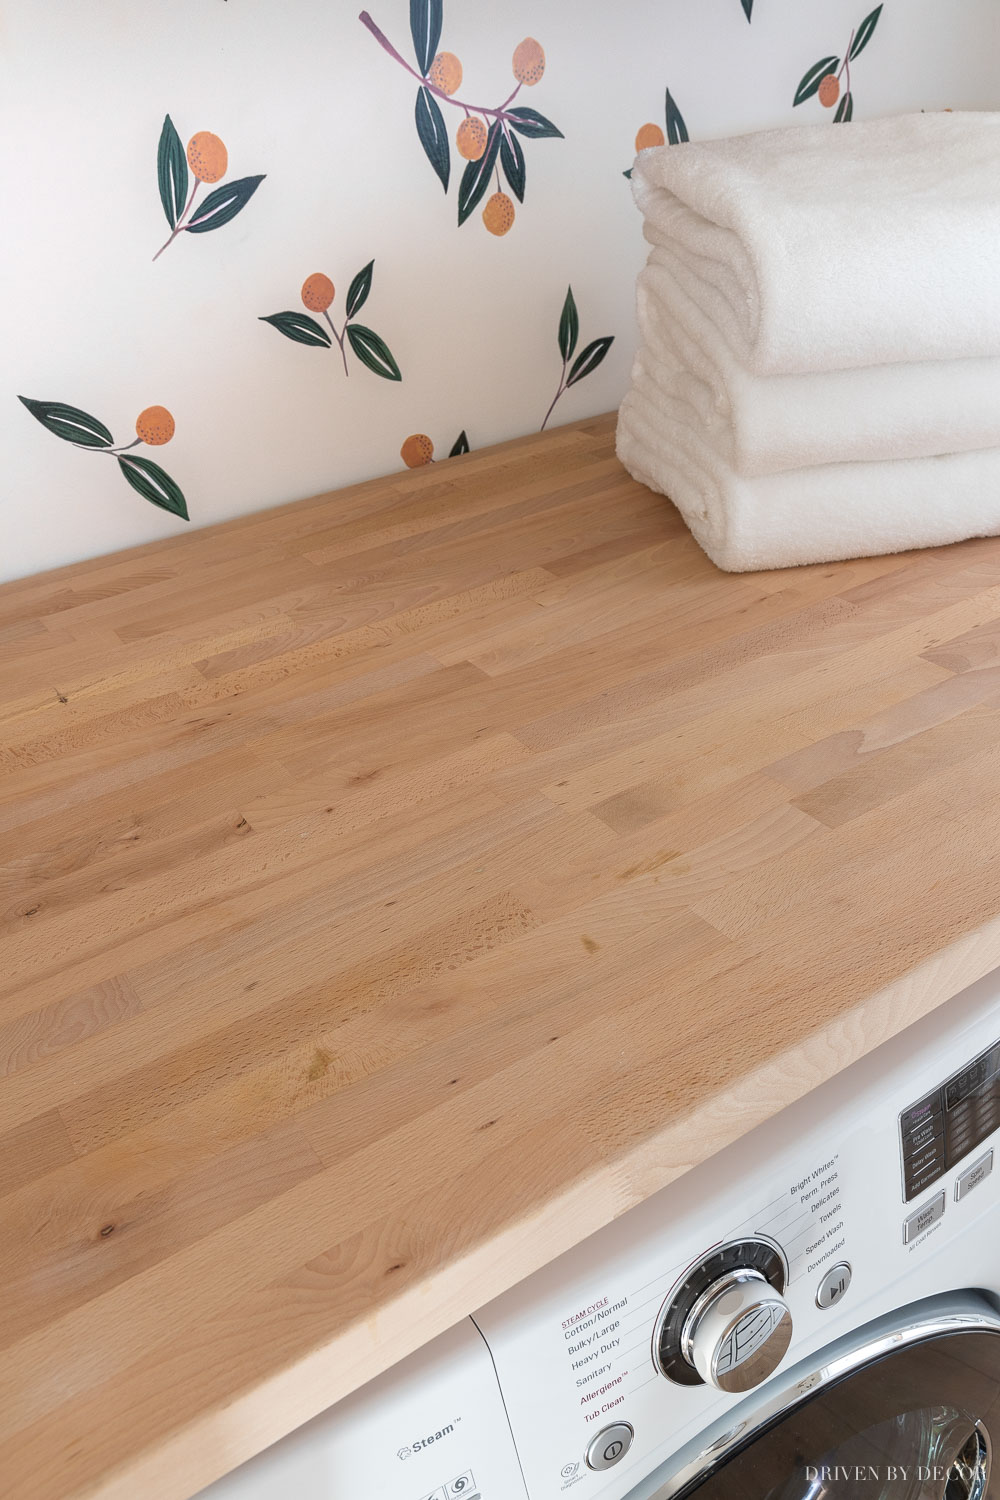 This Ikea wood countertop (butcher block) added a great space to fold and sort clothes in our laundry room!